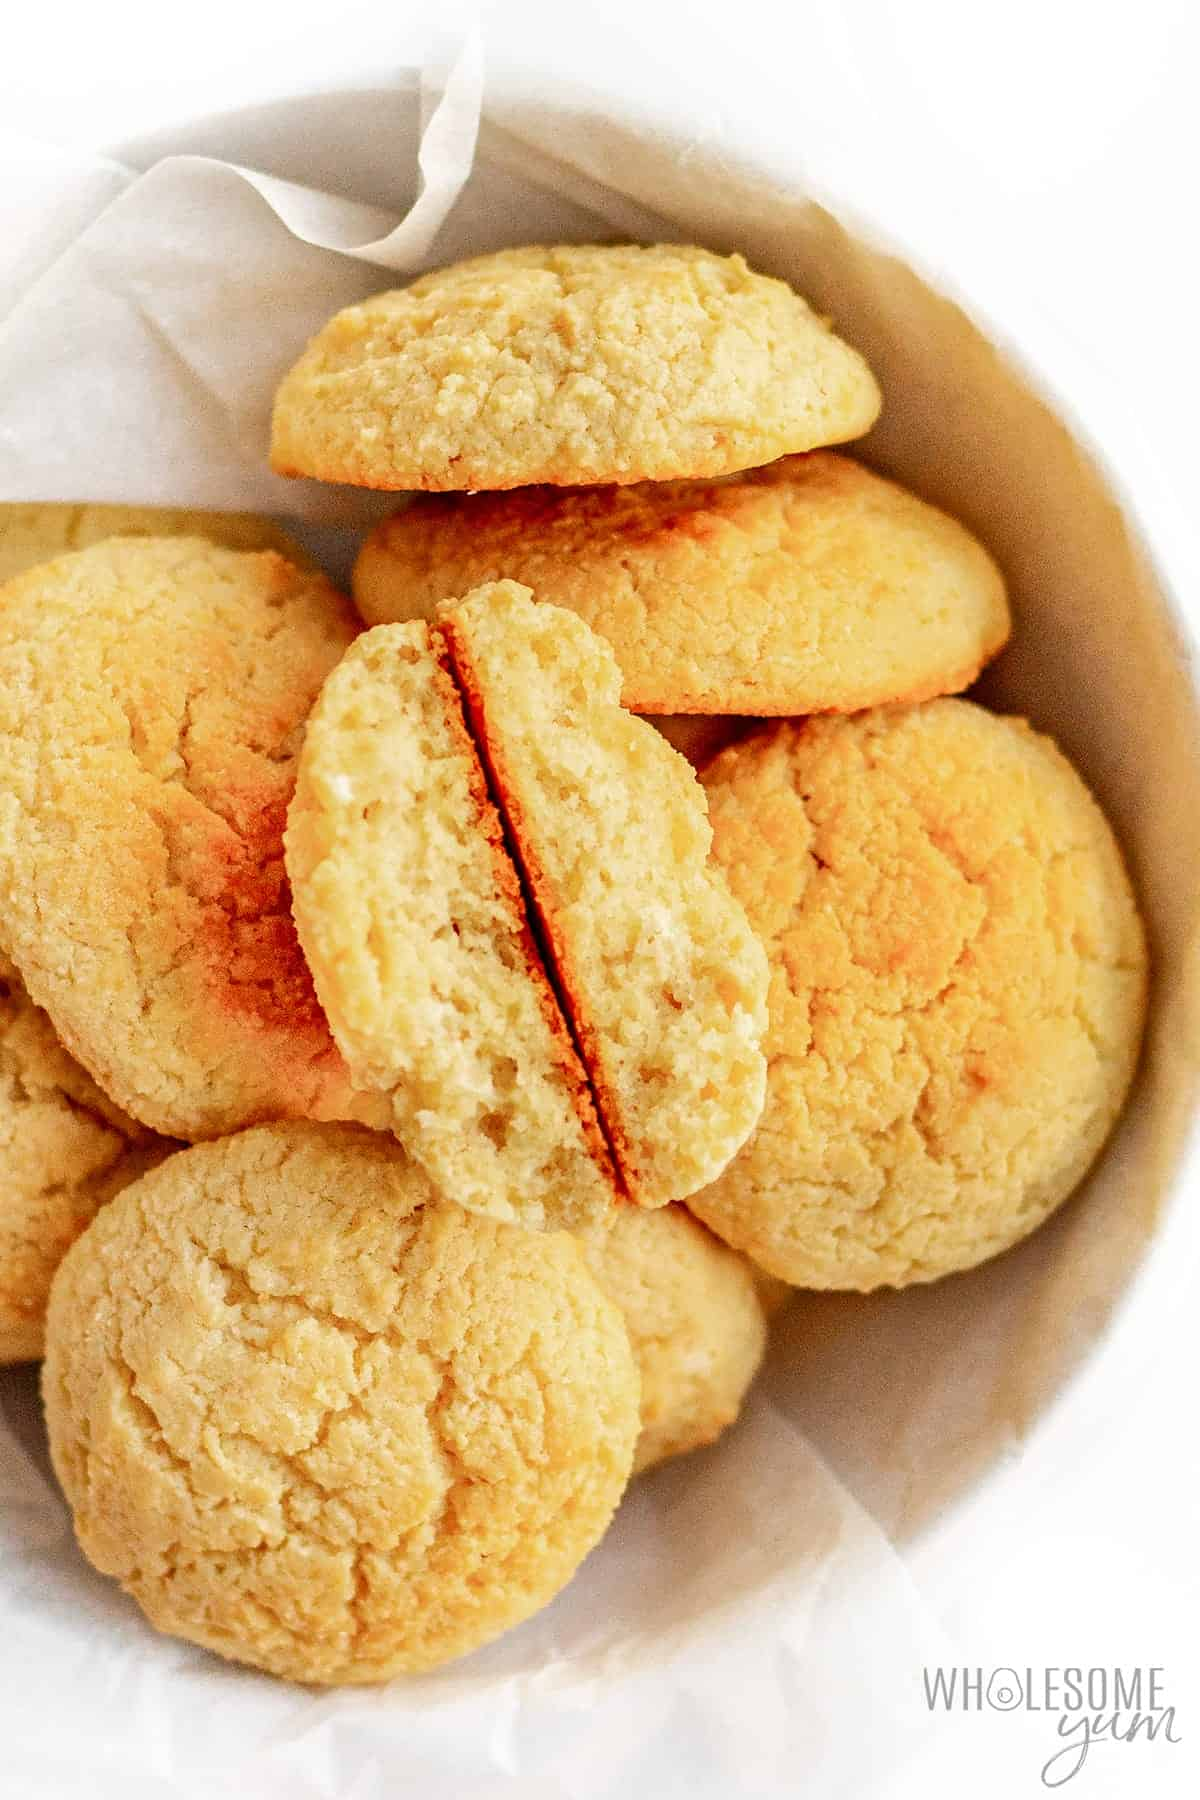 Buttery almond flour biscuits in a bowl, showing the inside of one biscuit